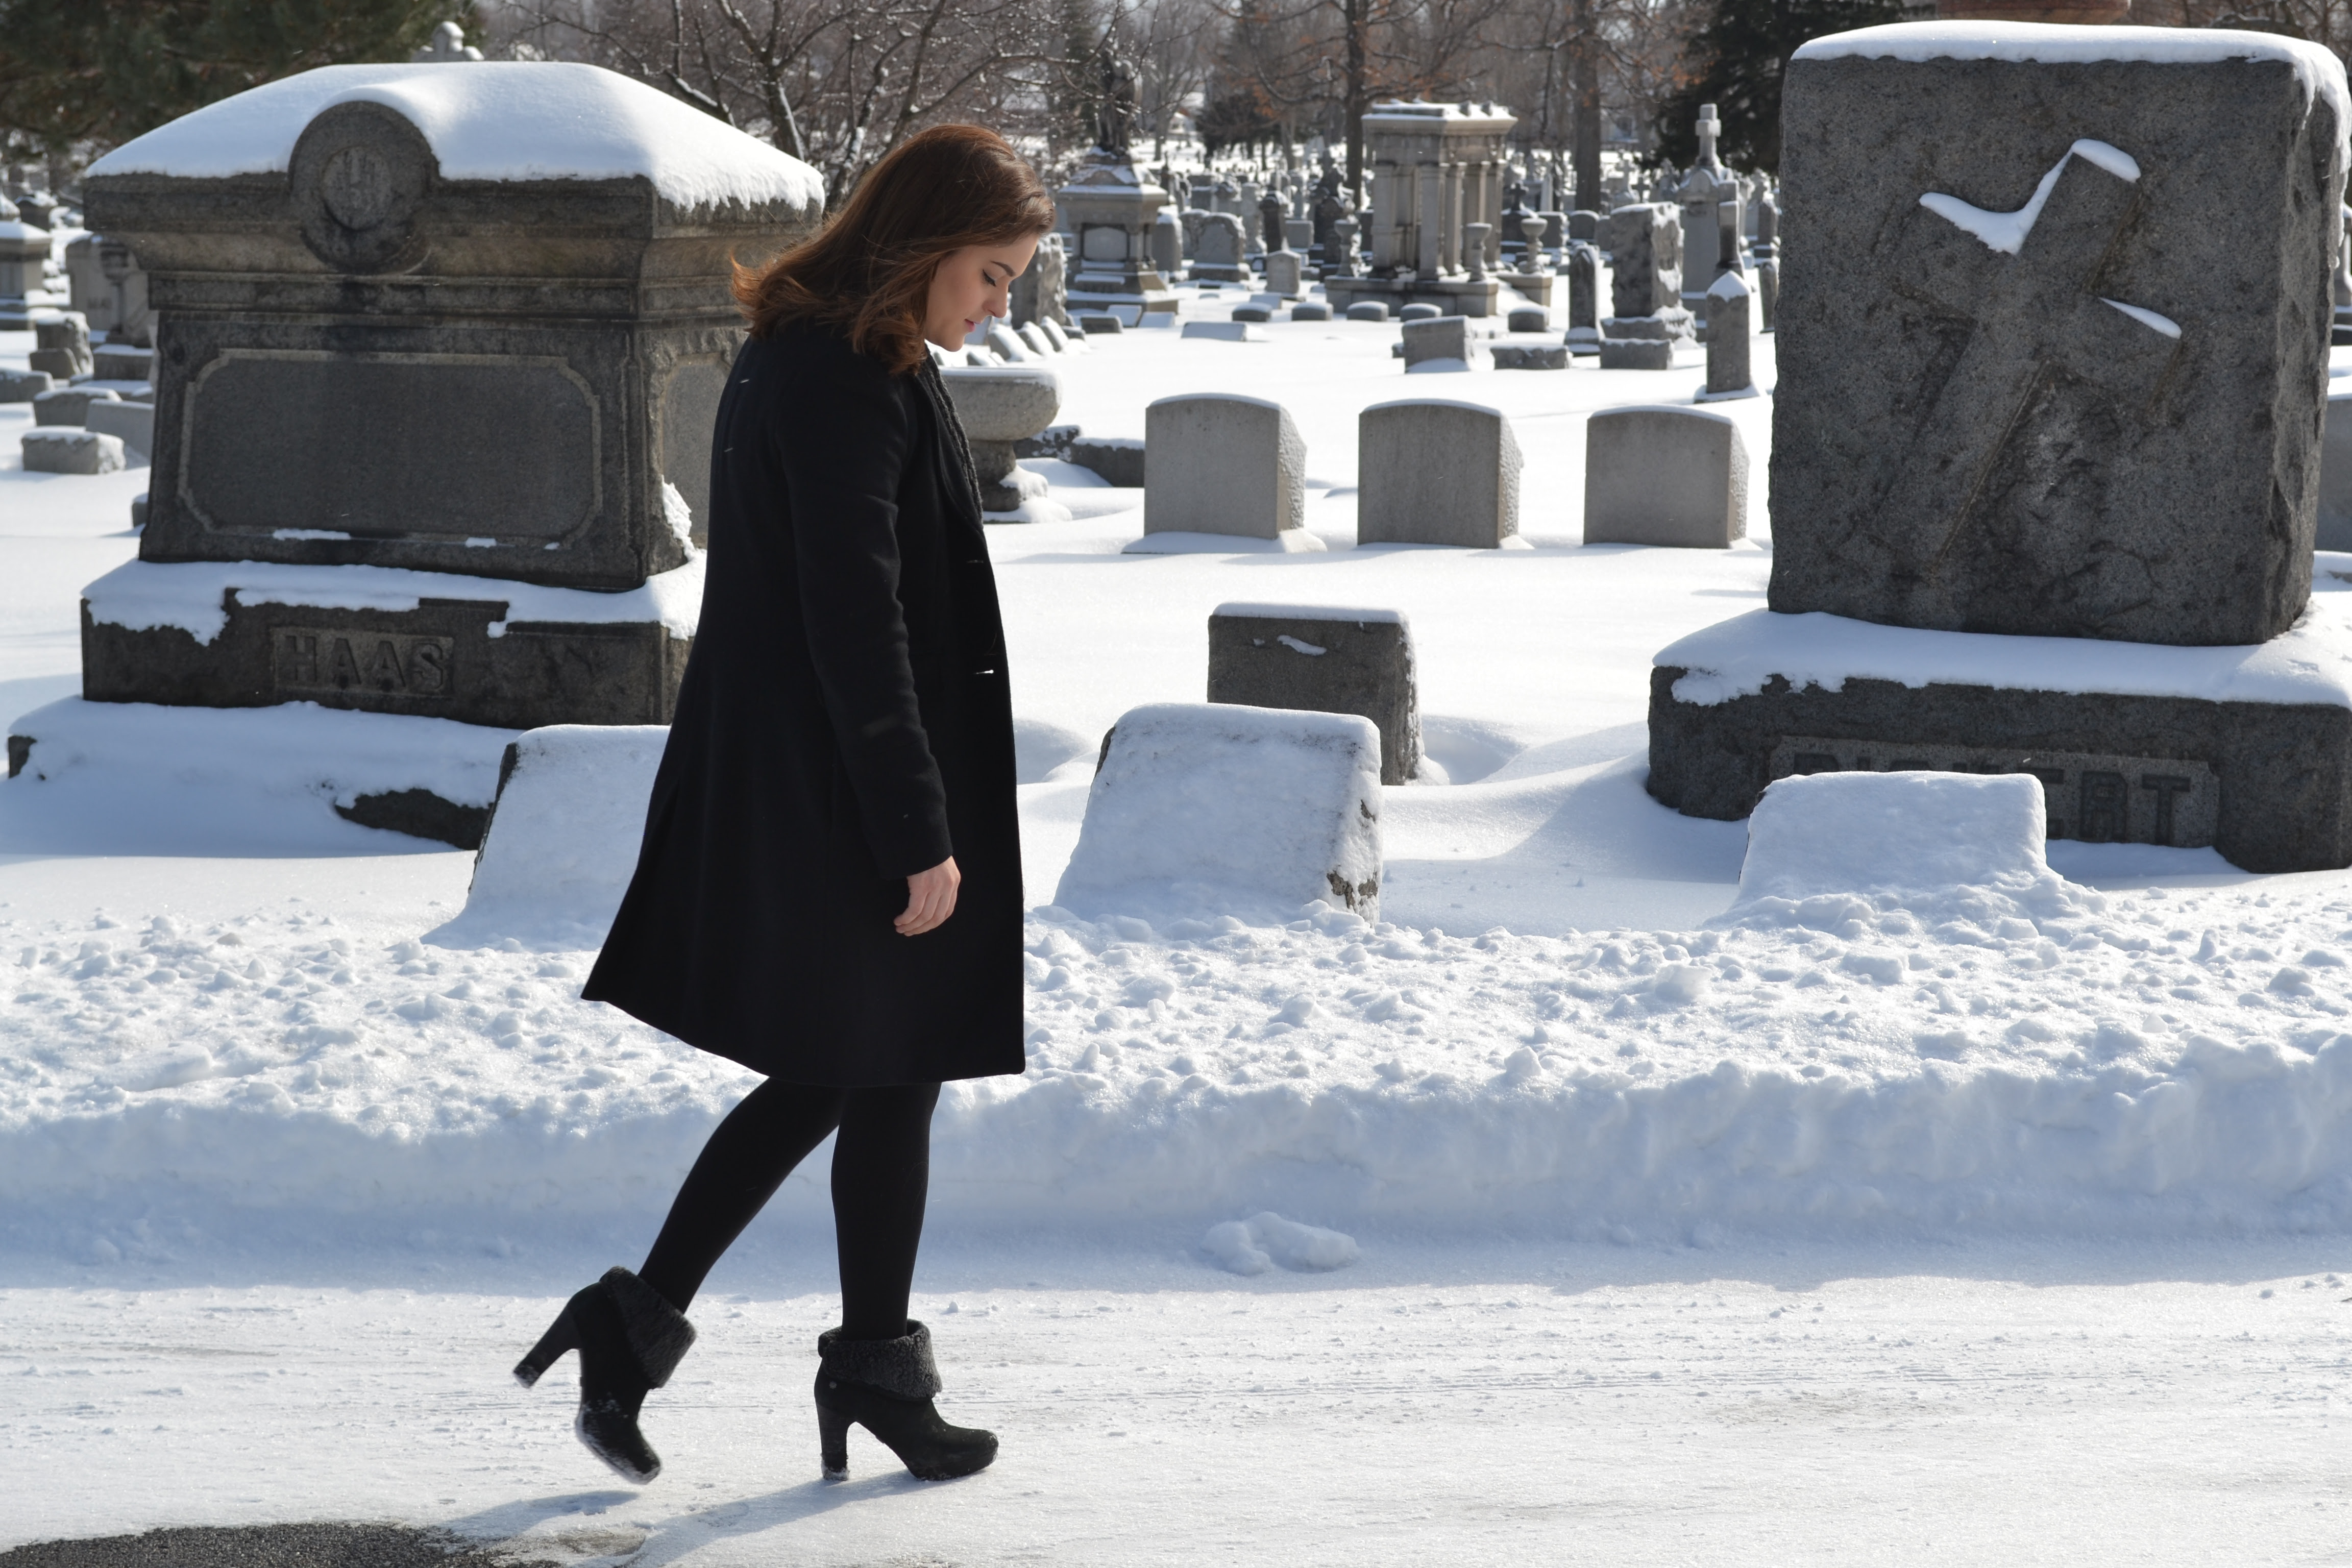 funeralone blog » blog archive little miss funeral's tips